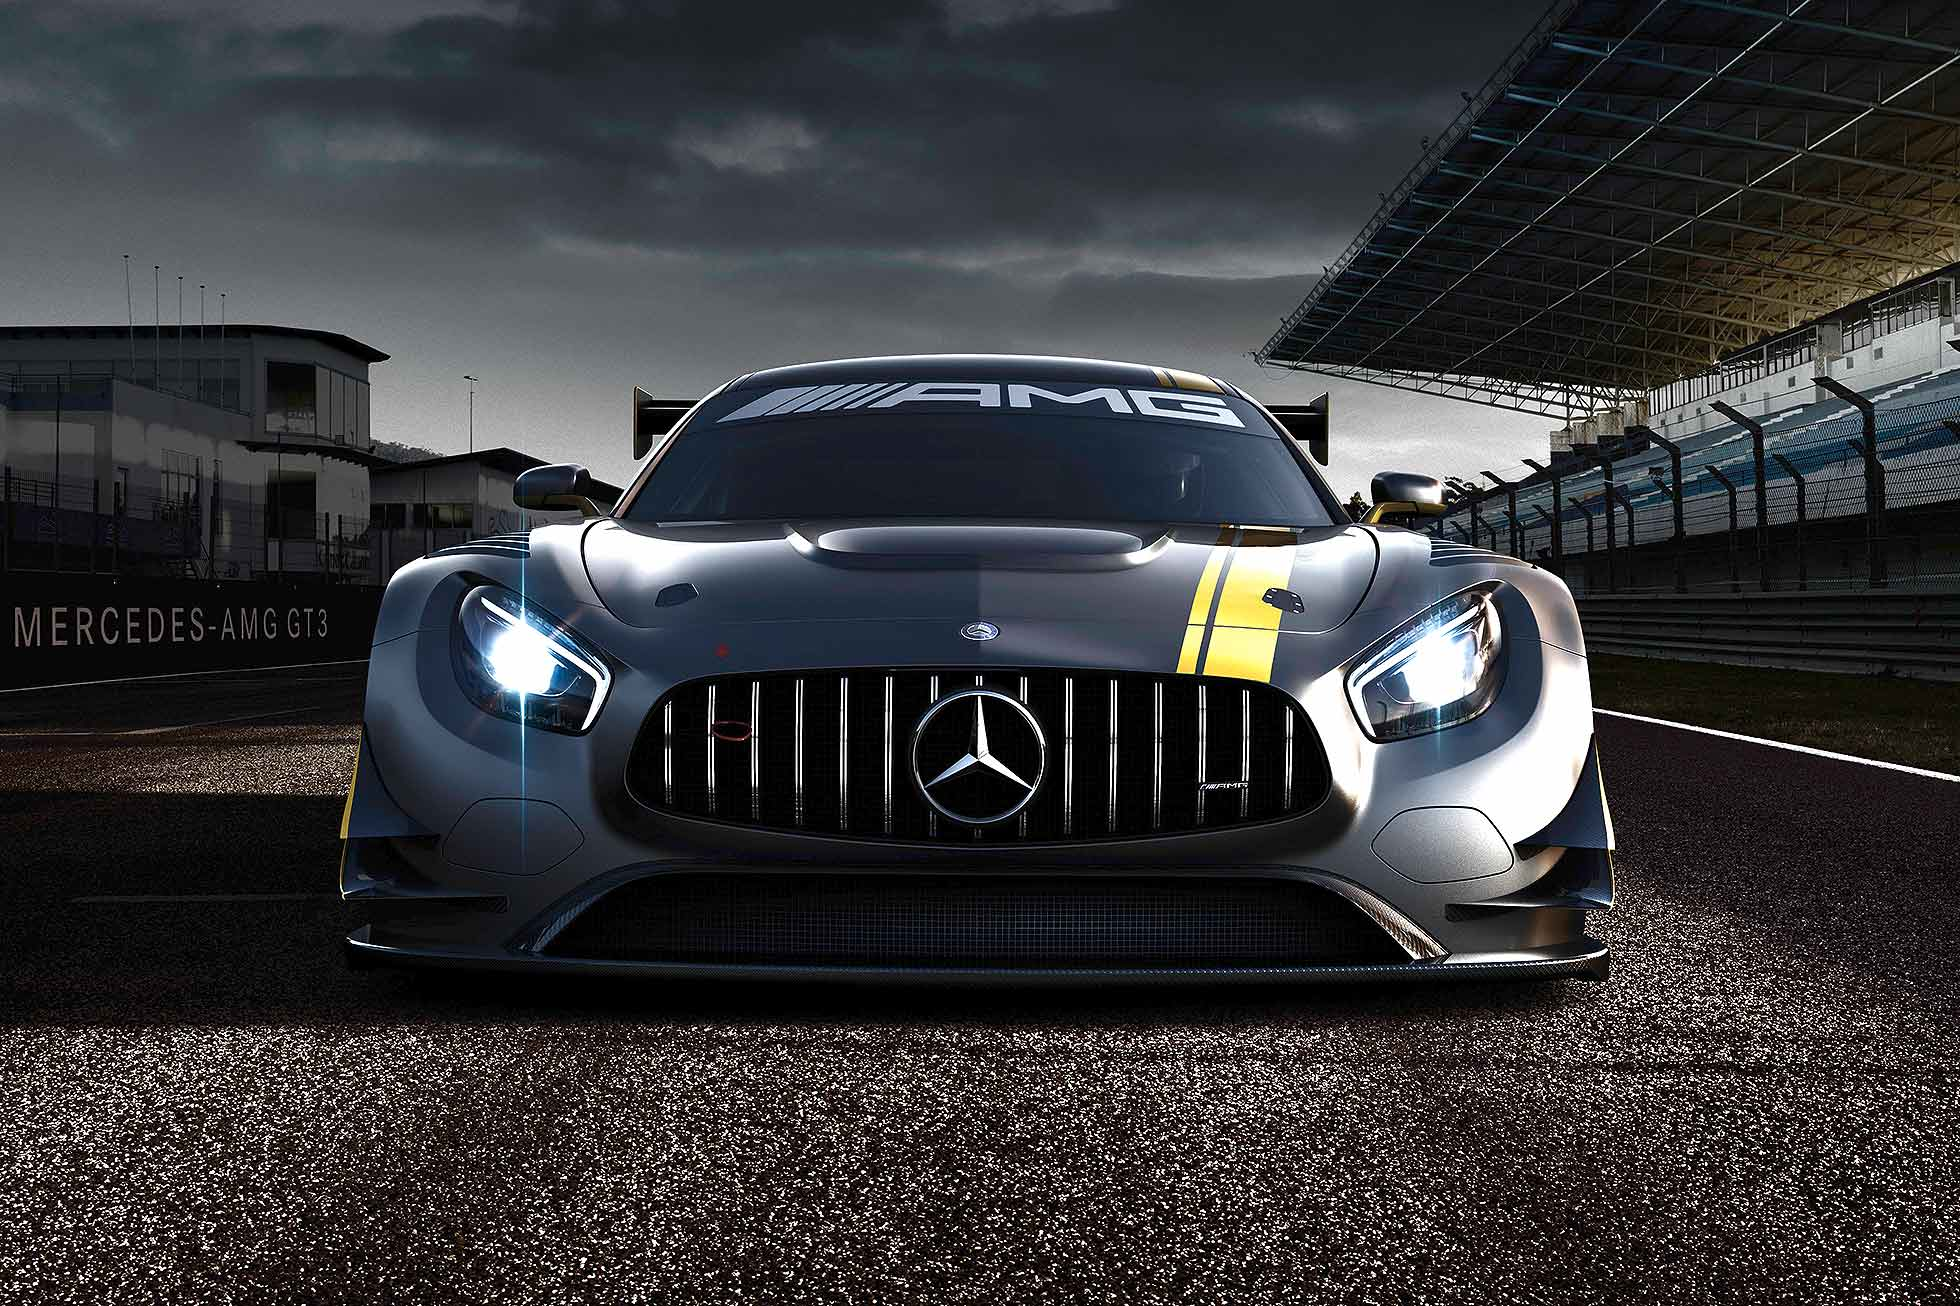 first look at mercedes amg gt3 racer motoring research. Black Bedroom Furniture Sets. Home Design Ideas